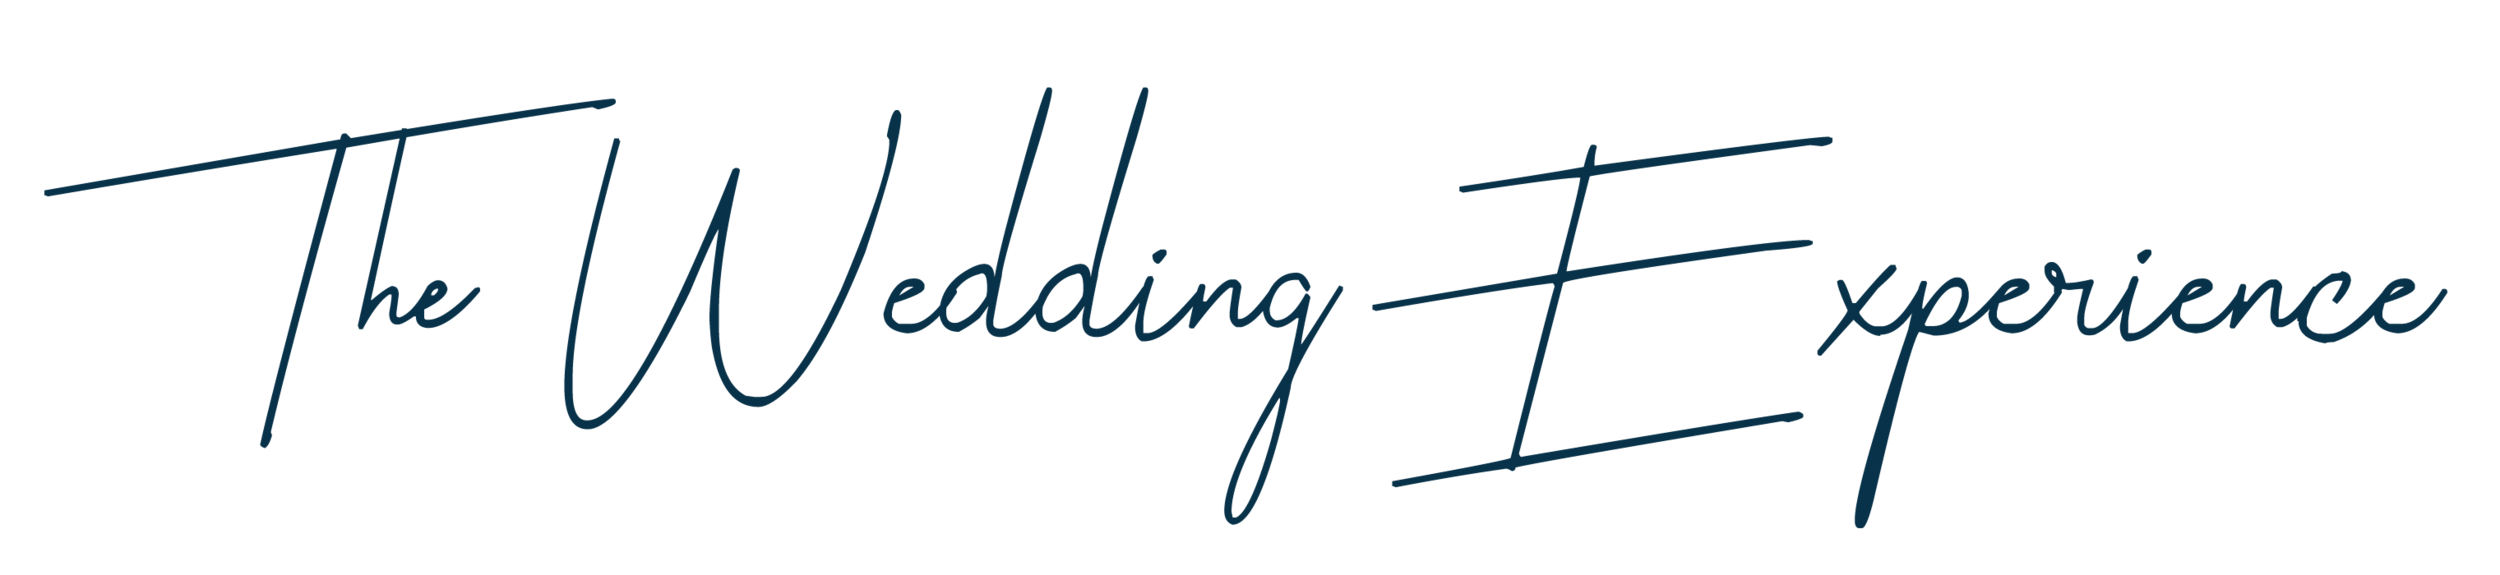 weddingexperience-03.png